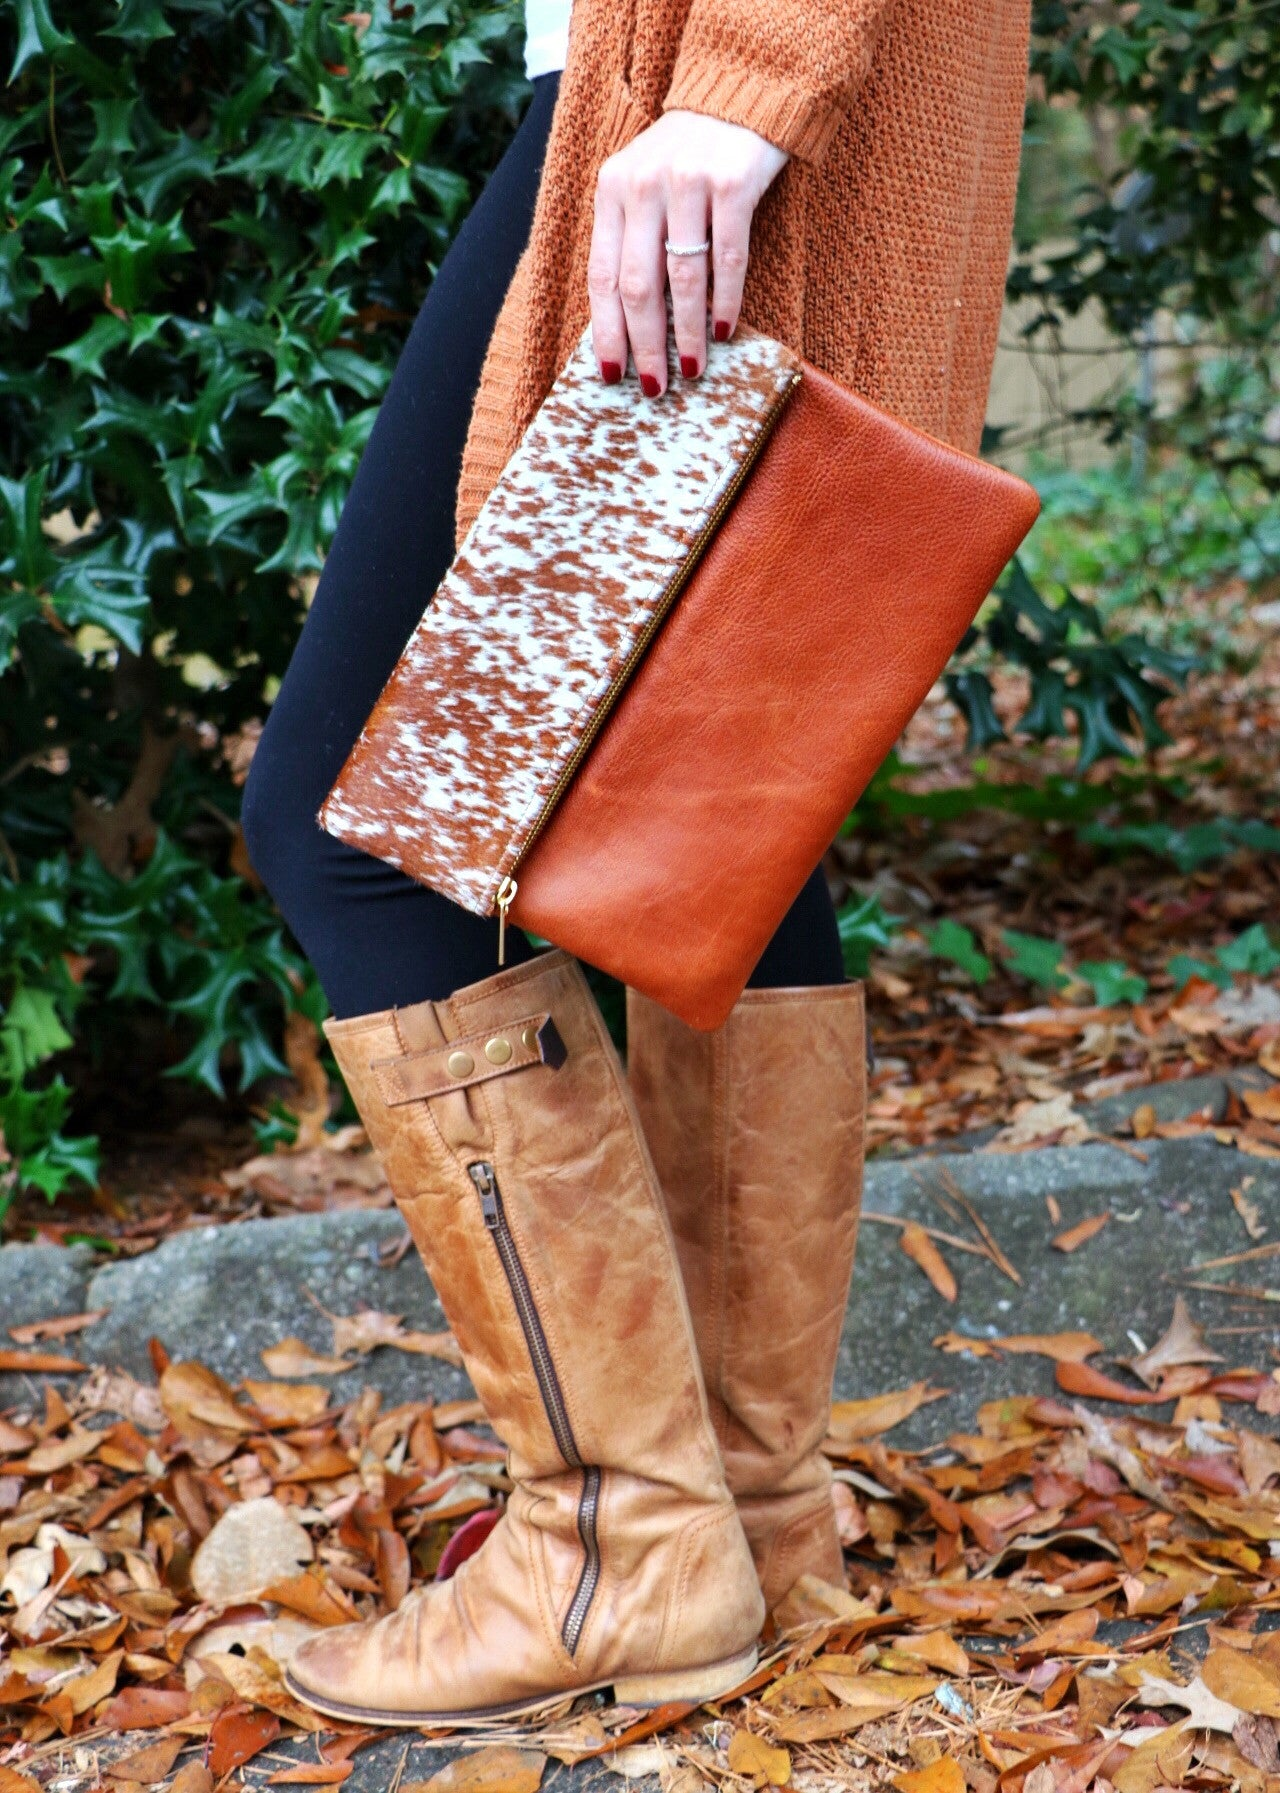 spotted pony leather handbag, bourbon brown leather handbag, perfect cross body handbag, Molly Jane Handbags, Southern Living Handbags, southern designer handbags, Gifts for her, Holiday Wishlist, hair on cross body handbag, italian leather clutch, leather handbag, The perfect clutch